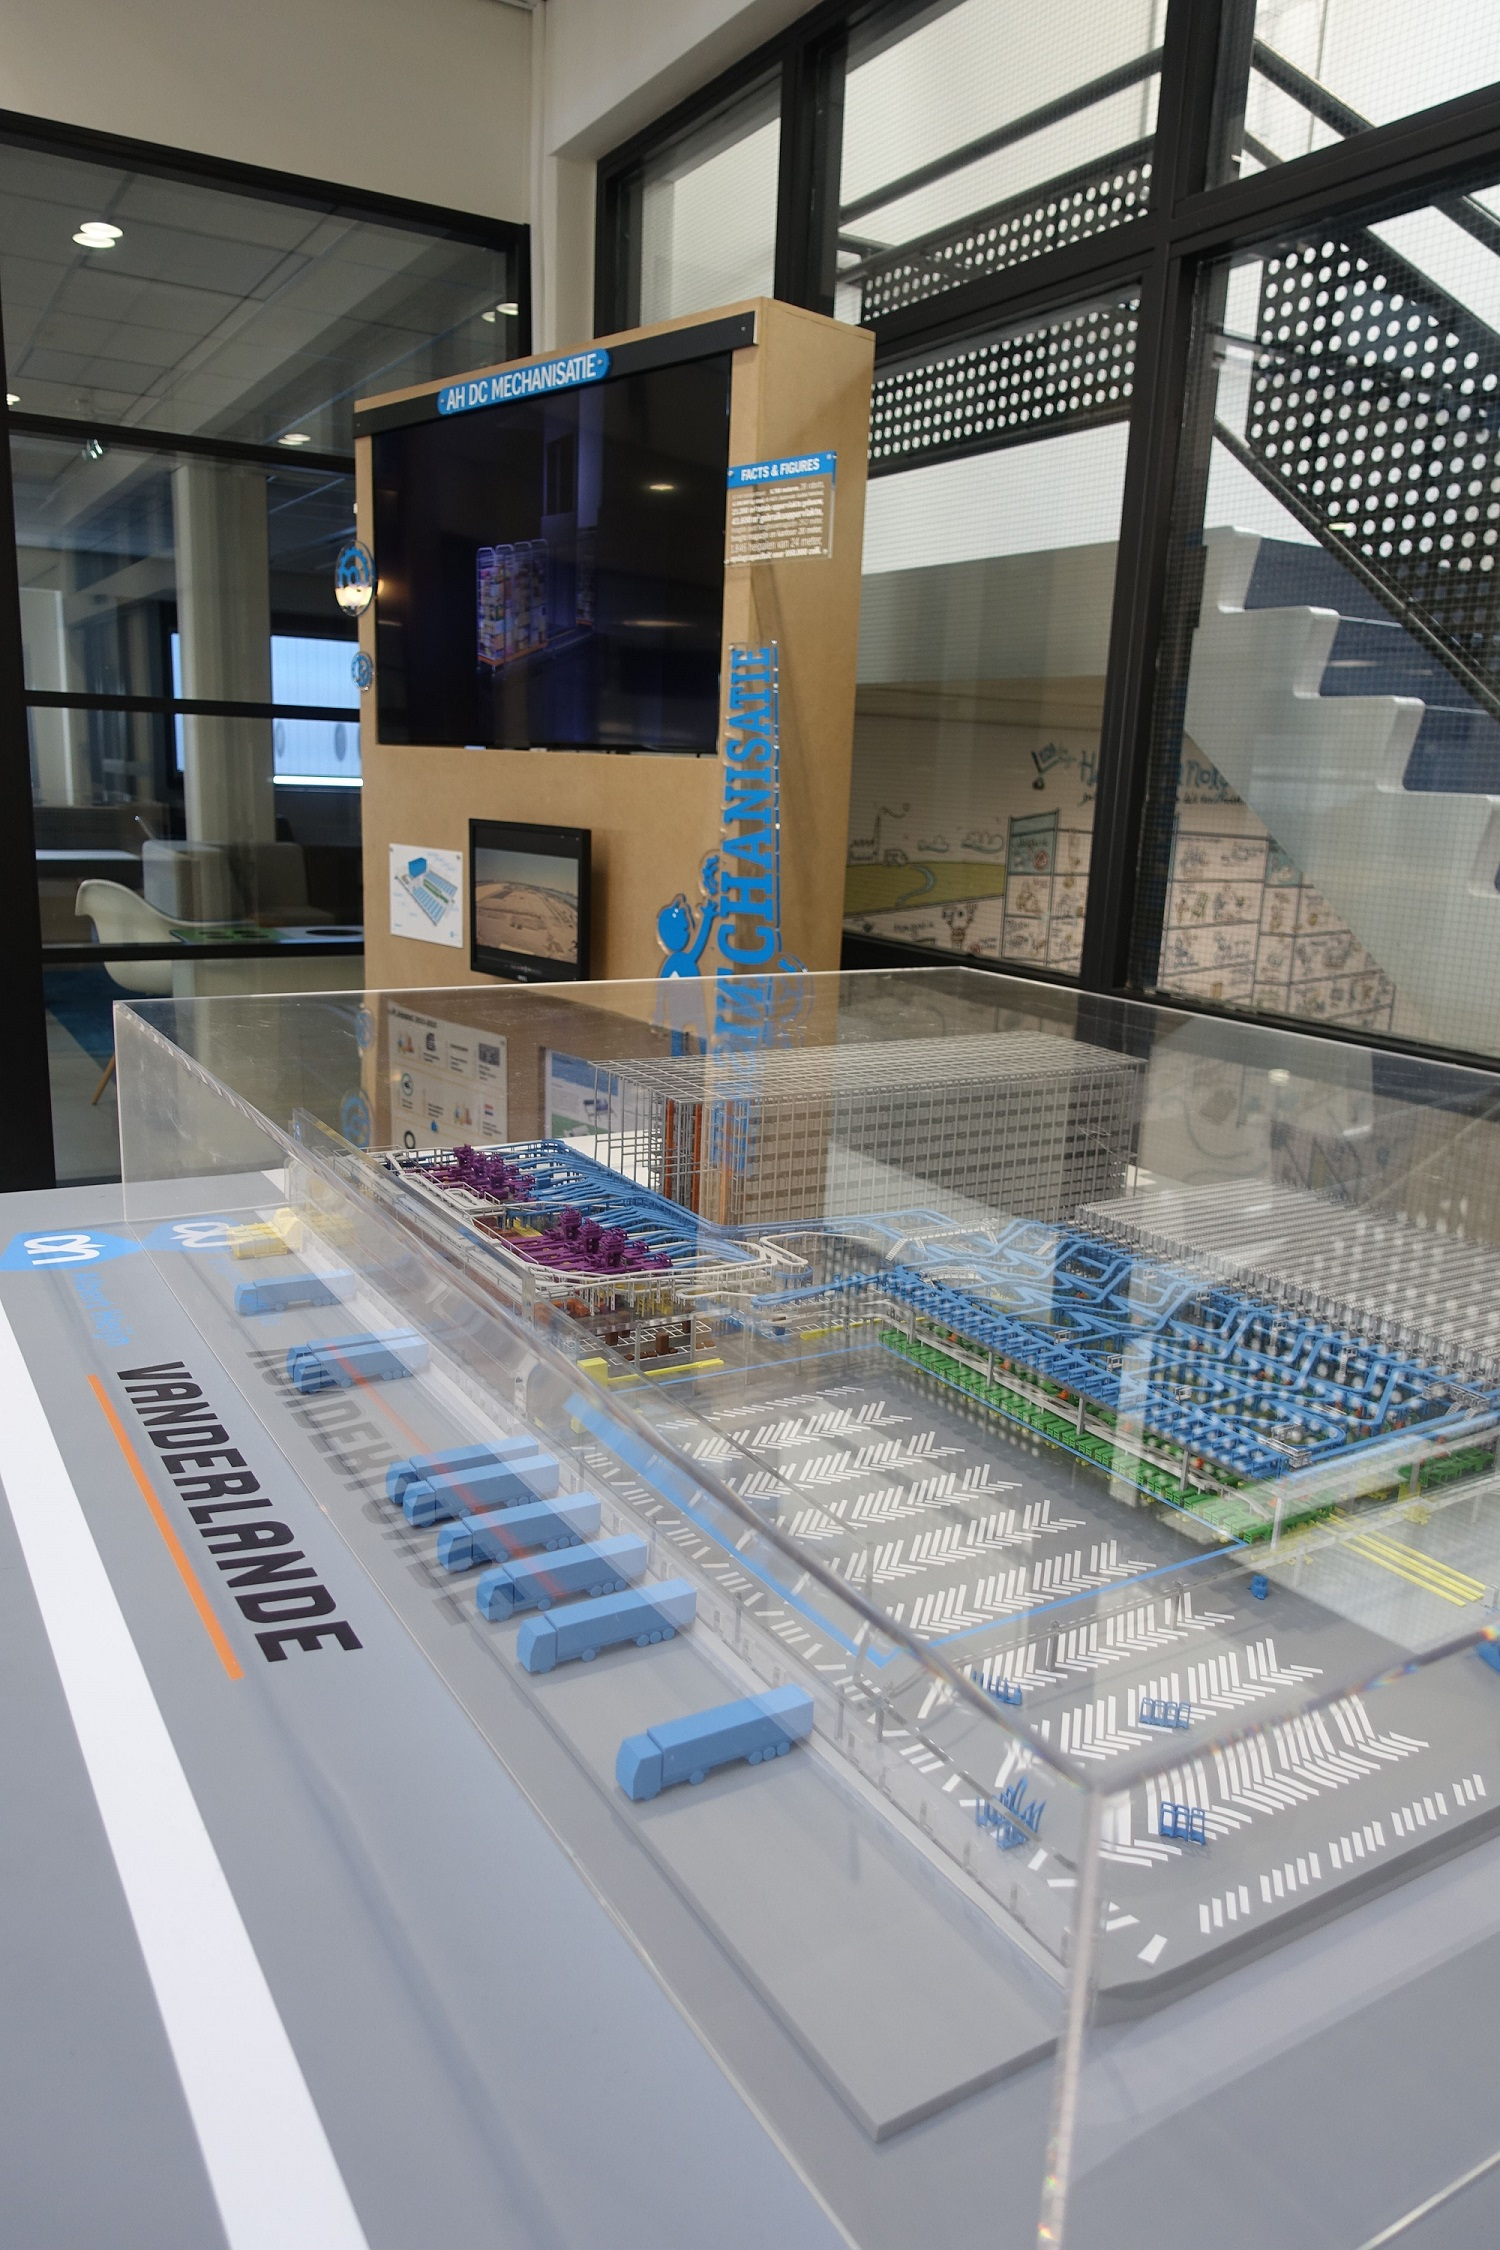 The 3D-printed maquette at Albert Heijn headquarters